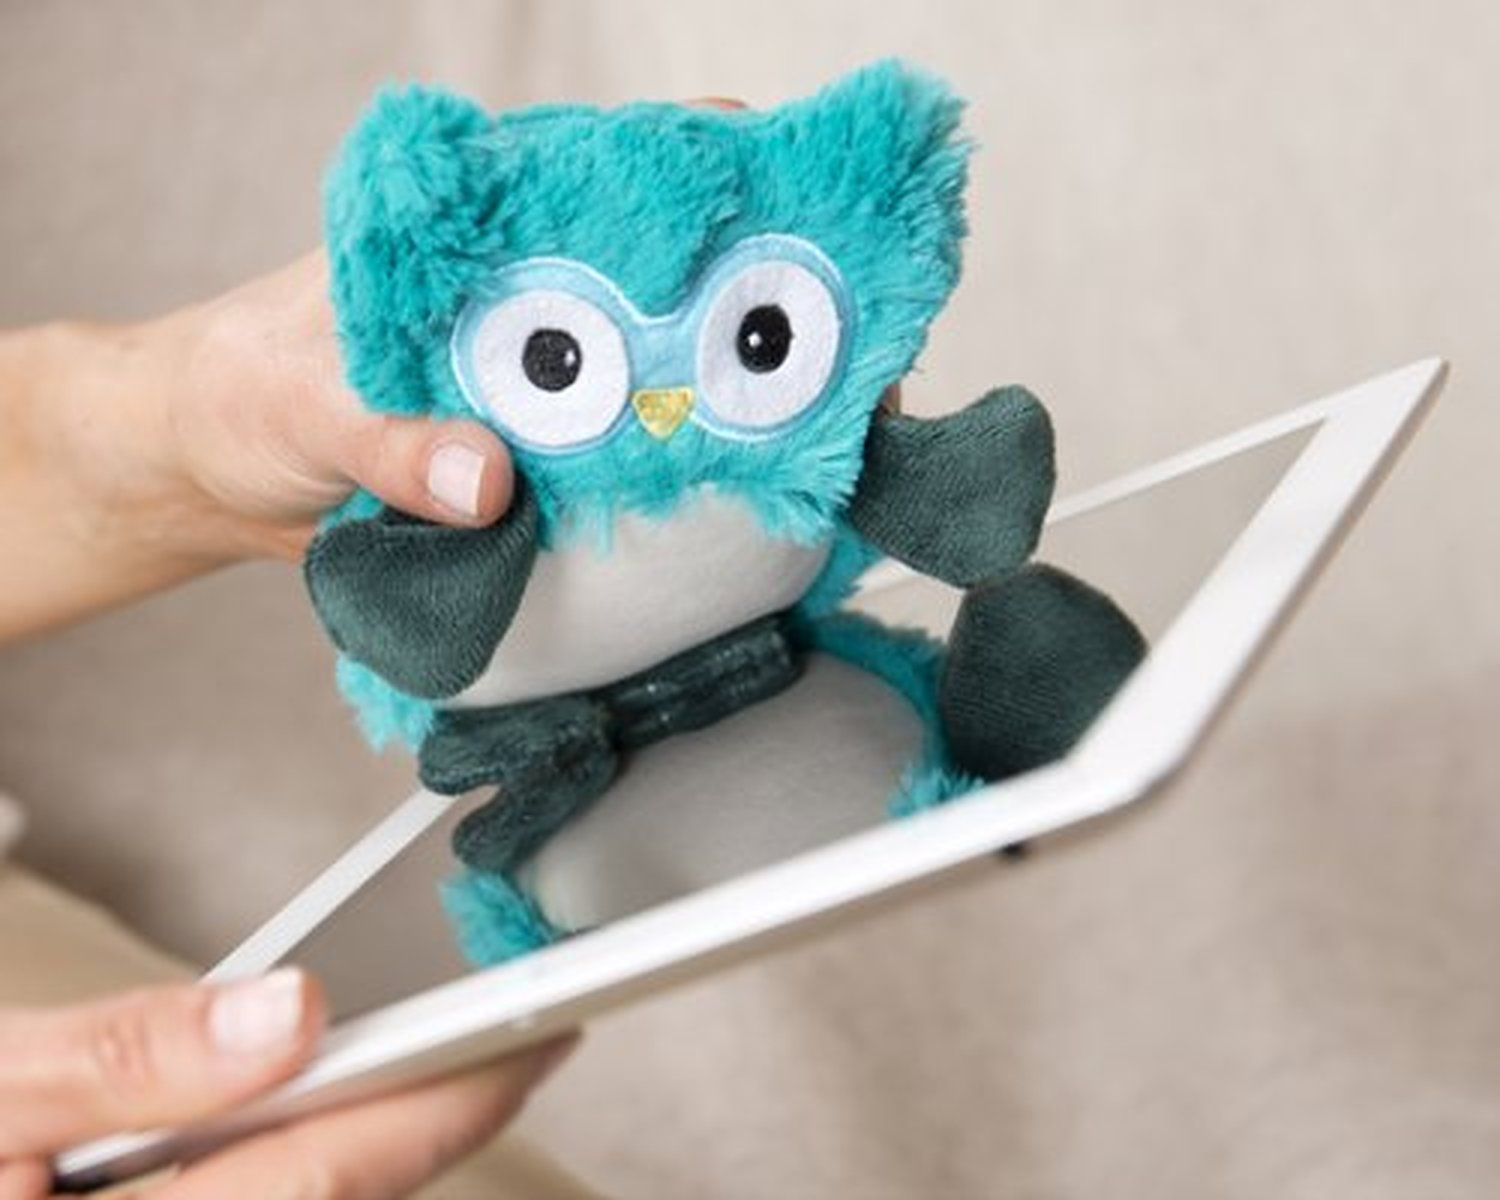 Details about LCD Laptop Computer Tablet iPad TV PC Screen Turquoise Hooty  Cleaner NEW